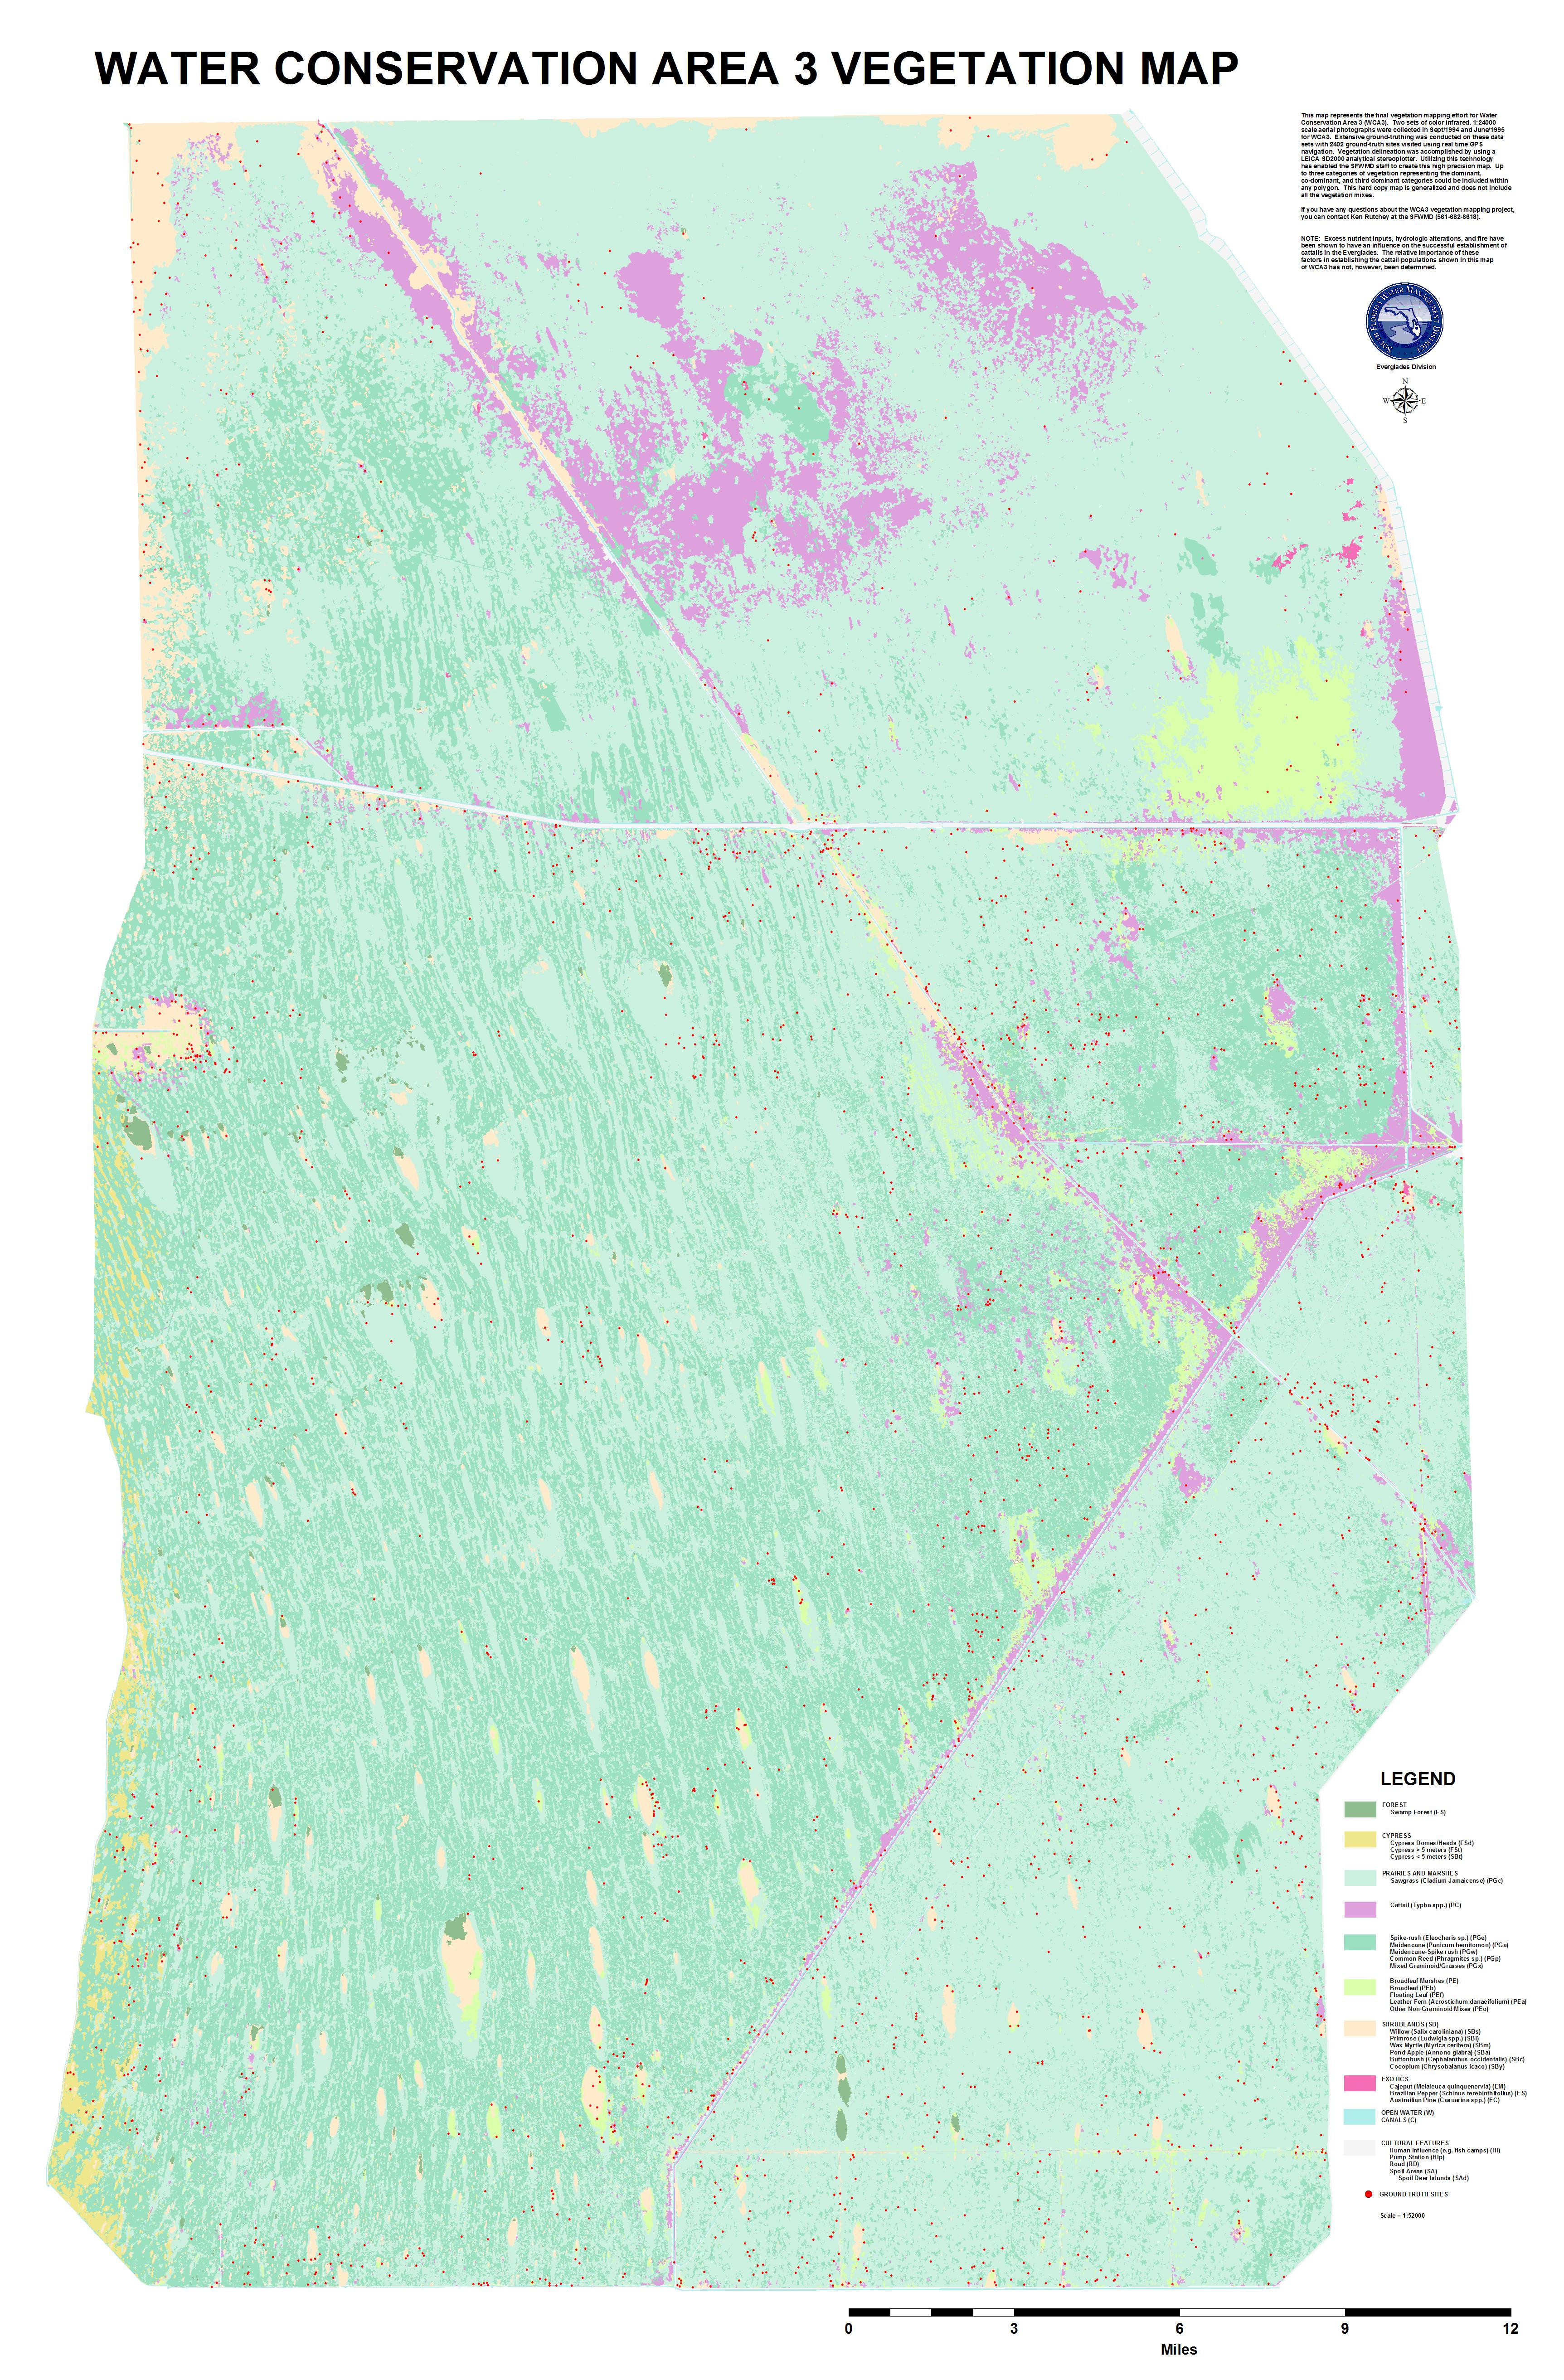 Vegetation map of Water Conservation Area 3, Everglades, South Florida (full scale)